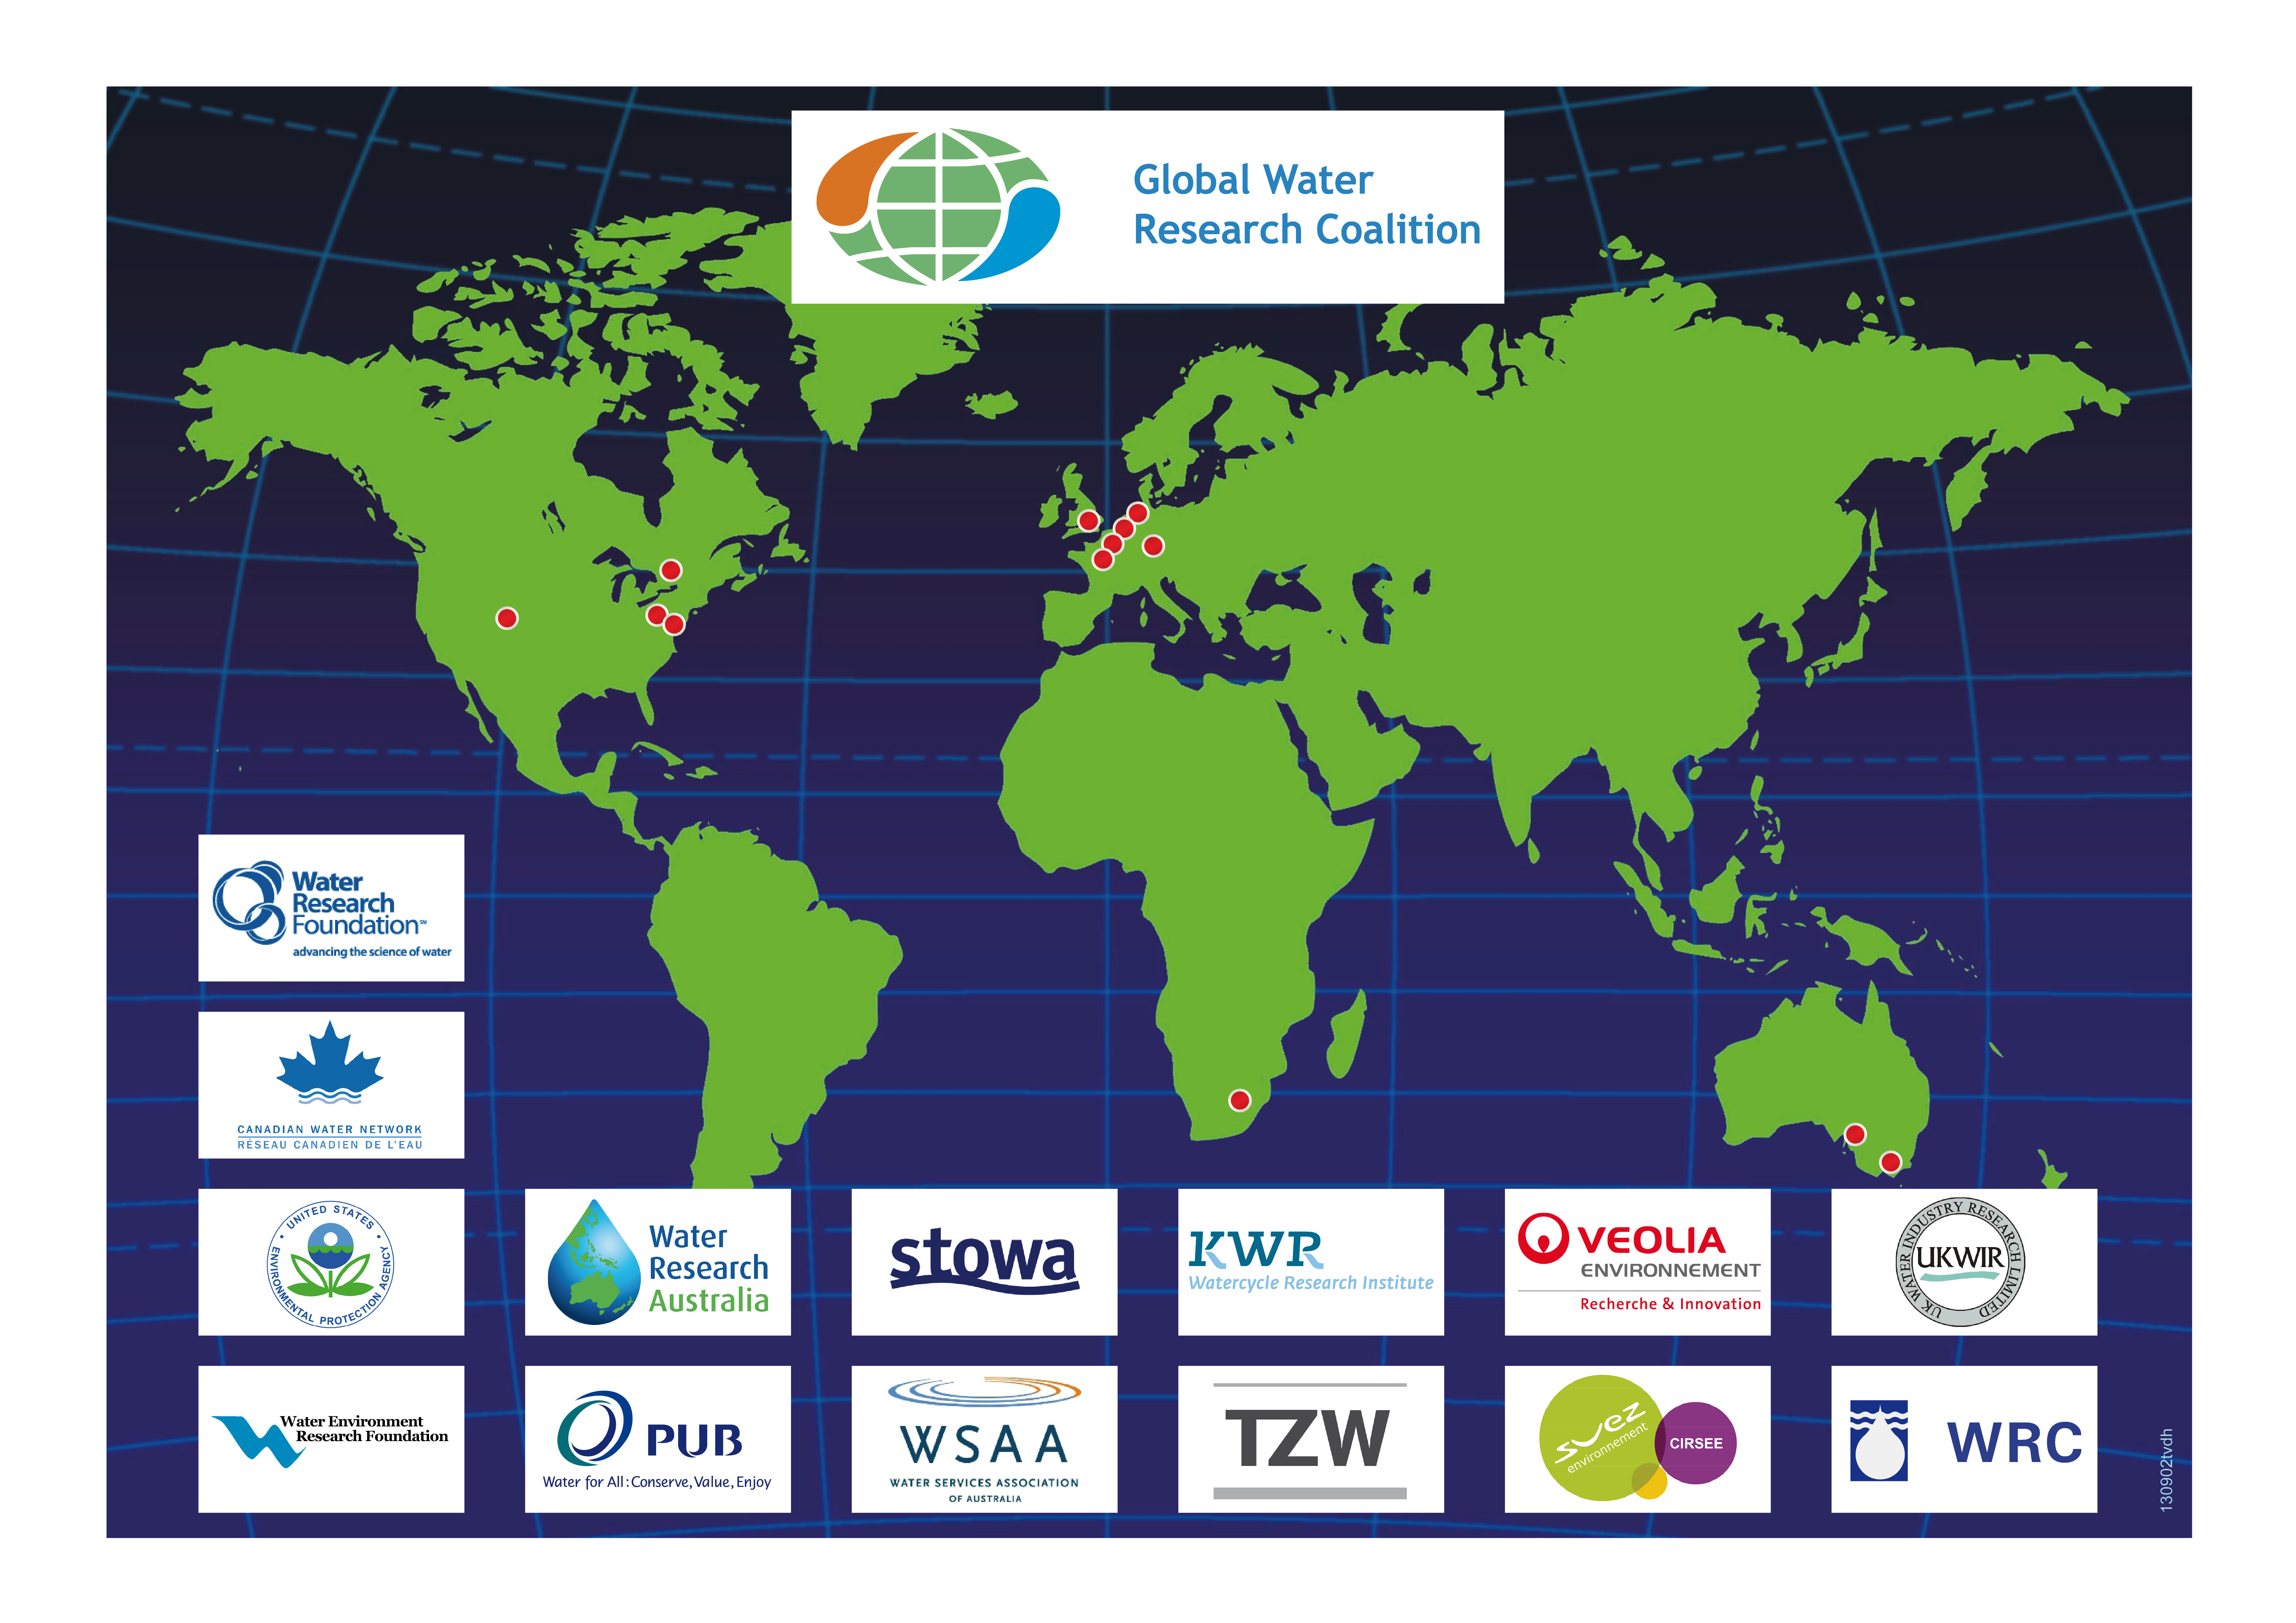 Fourteen leading research institutes – including KWR – are members of the GWRC global network.